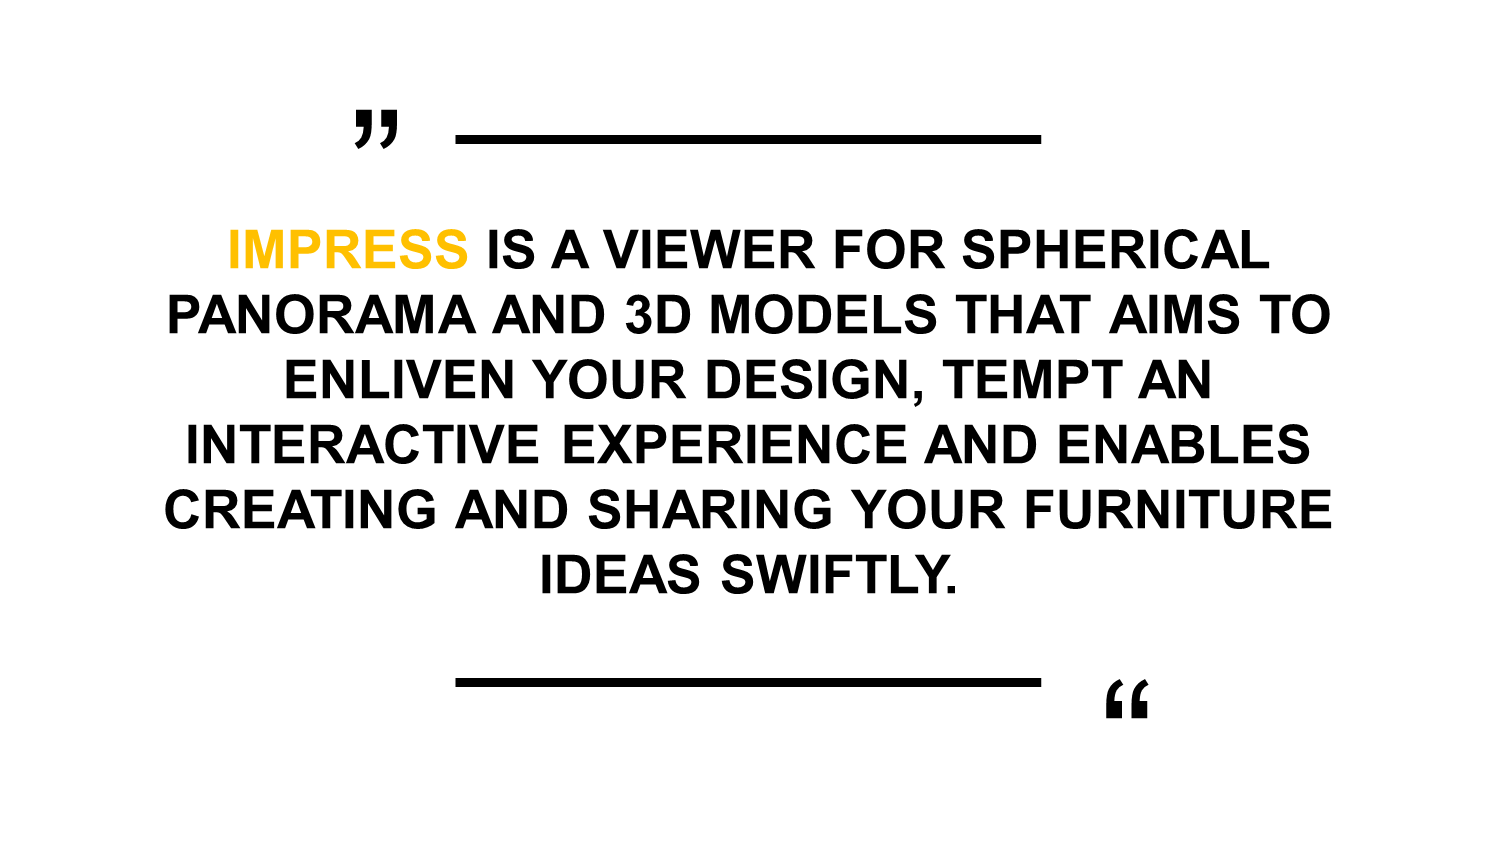 """""""Impress is a viewer for spherical panorama and 3D models that aims to enliven your design, tempt an interactive experience and enables creating and sharing your furniture ideas swiftly"""""""